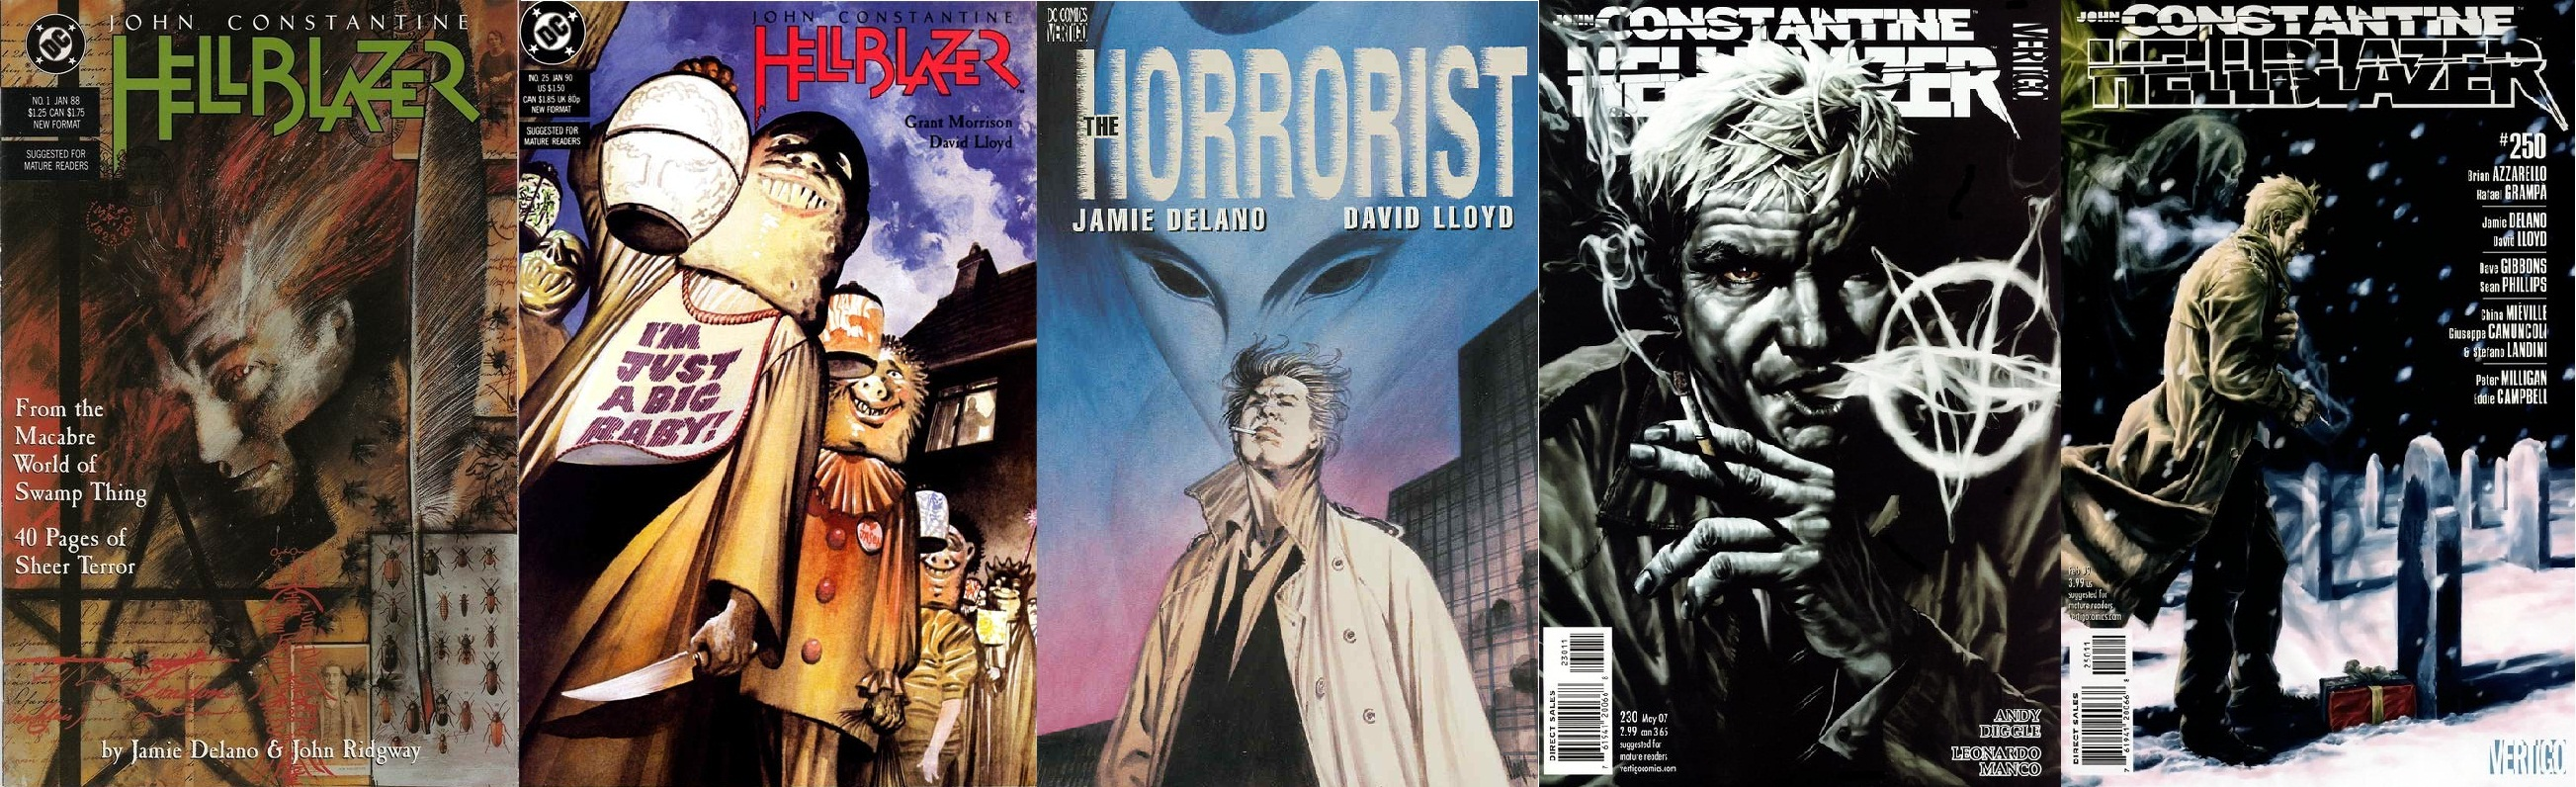 Hellblazer comics by Jamie Delano, David Lloyd, Andy Diggle and Peter Milligan